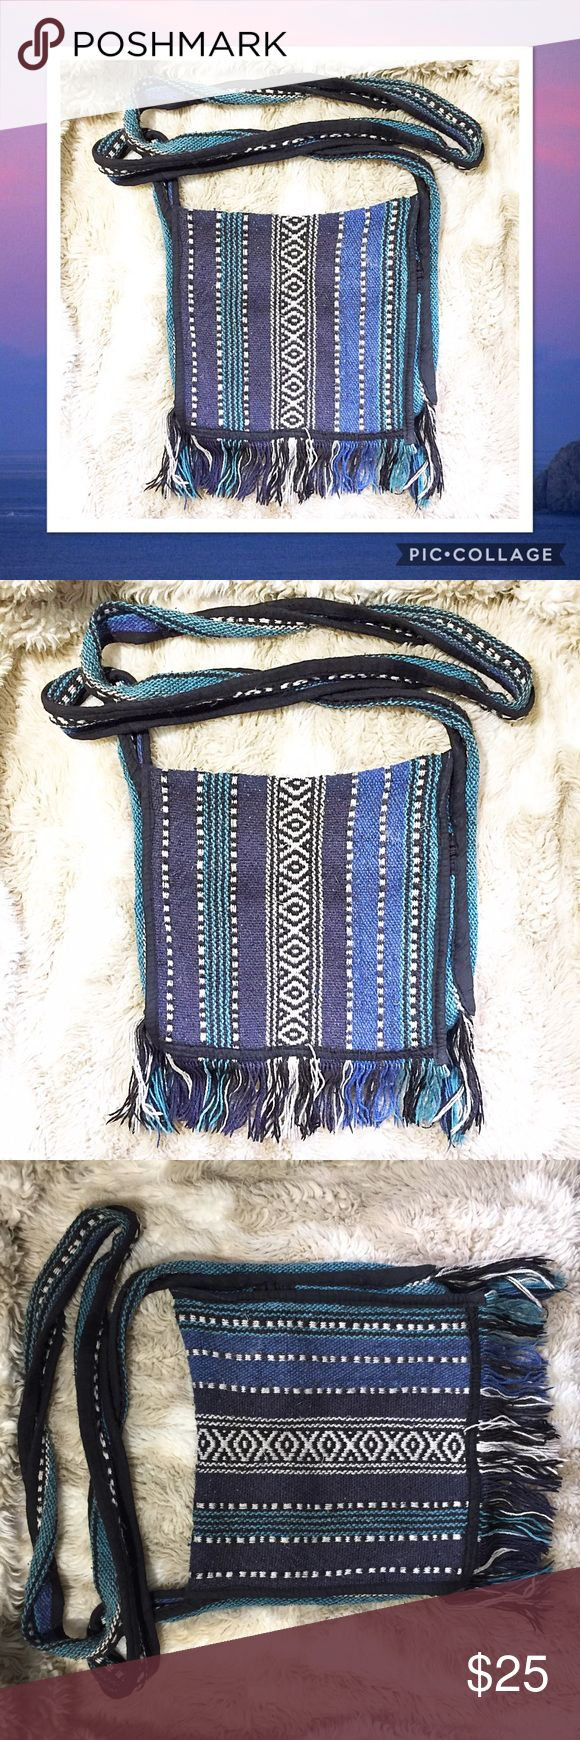 Baja Fringe Boho Woven Knit Crossbody Purse Baja tassel boho style Crossbody purse. Woven Knit texture similar to the jackets and blankets made in this style.  #baja #tassel #boho #crossbody #purse #textured #woven #knit #fringe #mexican #california #punkydoodle  No modeling Smoke free home I do discount bundles Bags Crossbody Bags